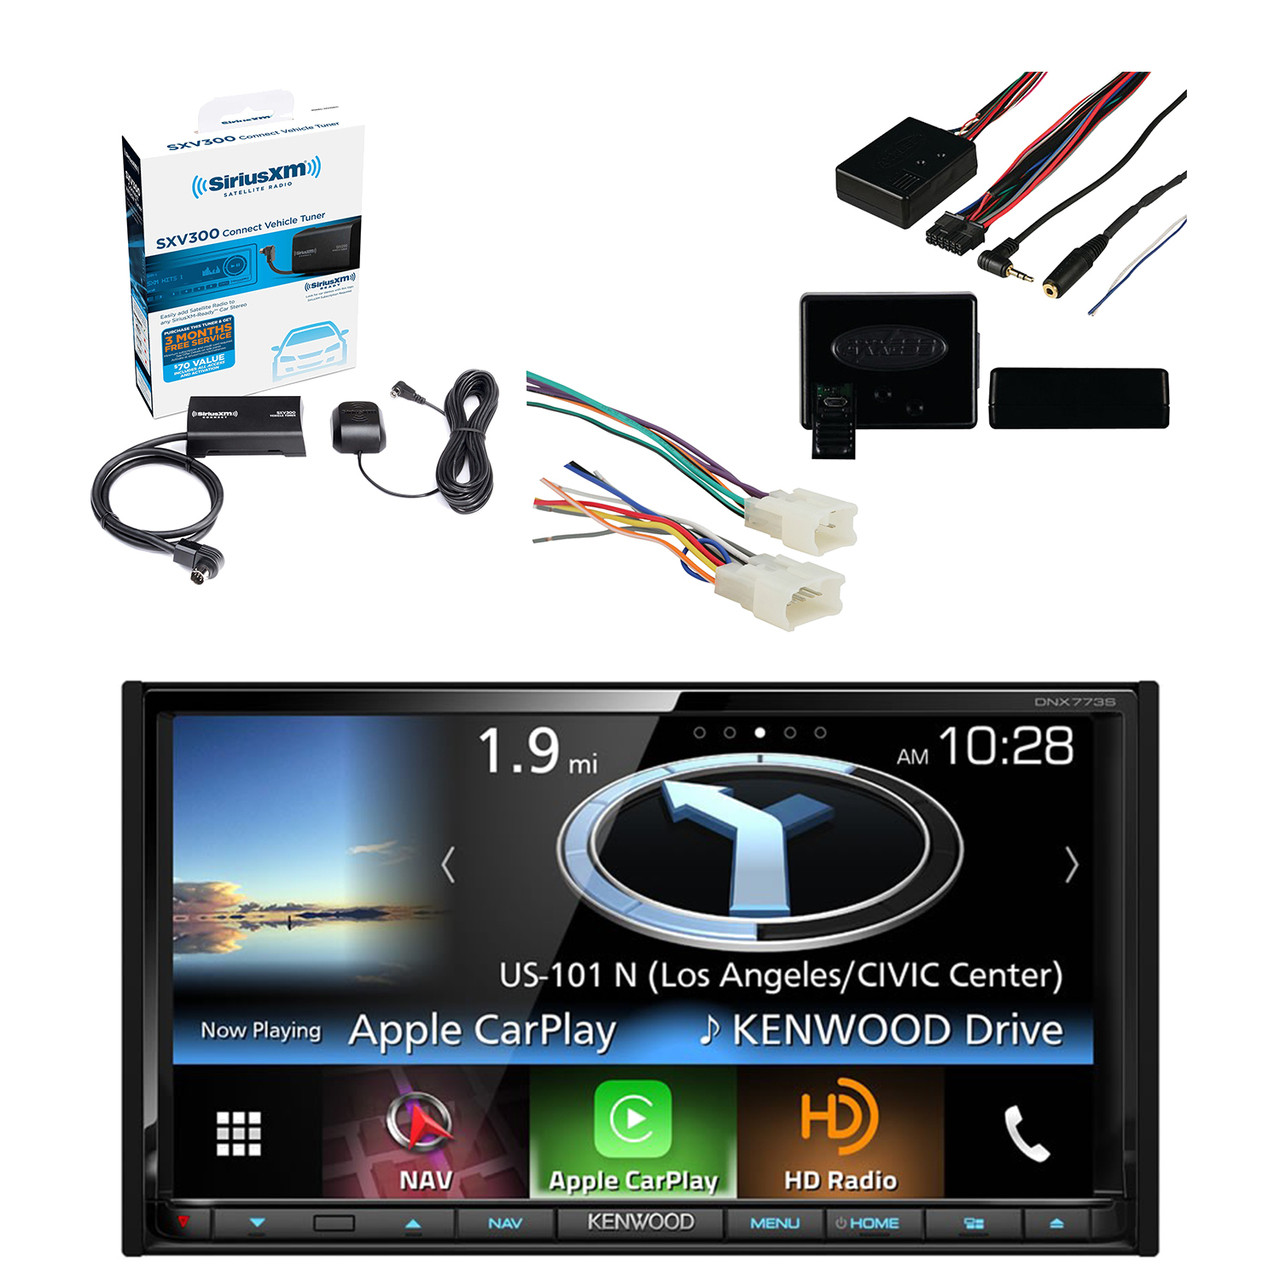 Kenwood In-Dash 2-DIN 6.95 Inch Touchscreen DVD Receiver with ... on dash radio, 1971 chevelle dash harness, 1967 chevrolet van dash harness, 1987 chevy dash harness, dash gauges, chevy suburban wire harness, 99 firebird dash harness,